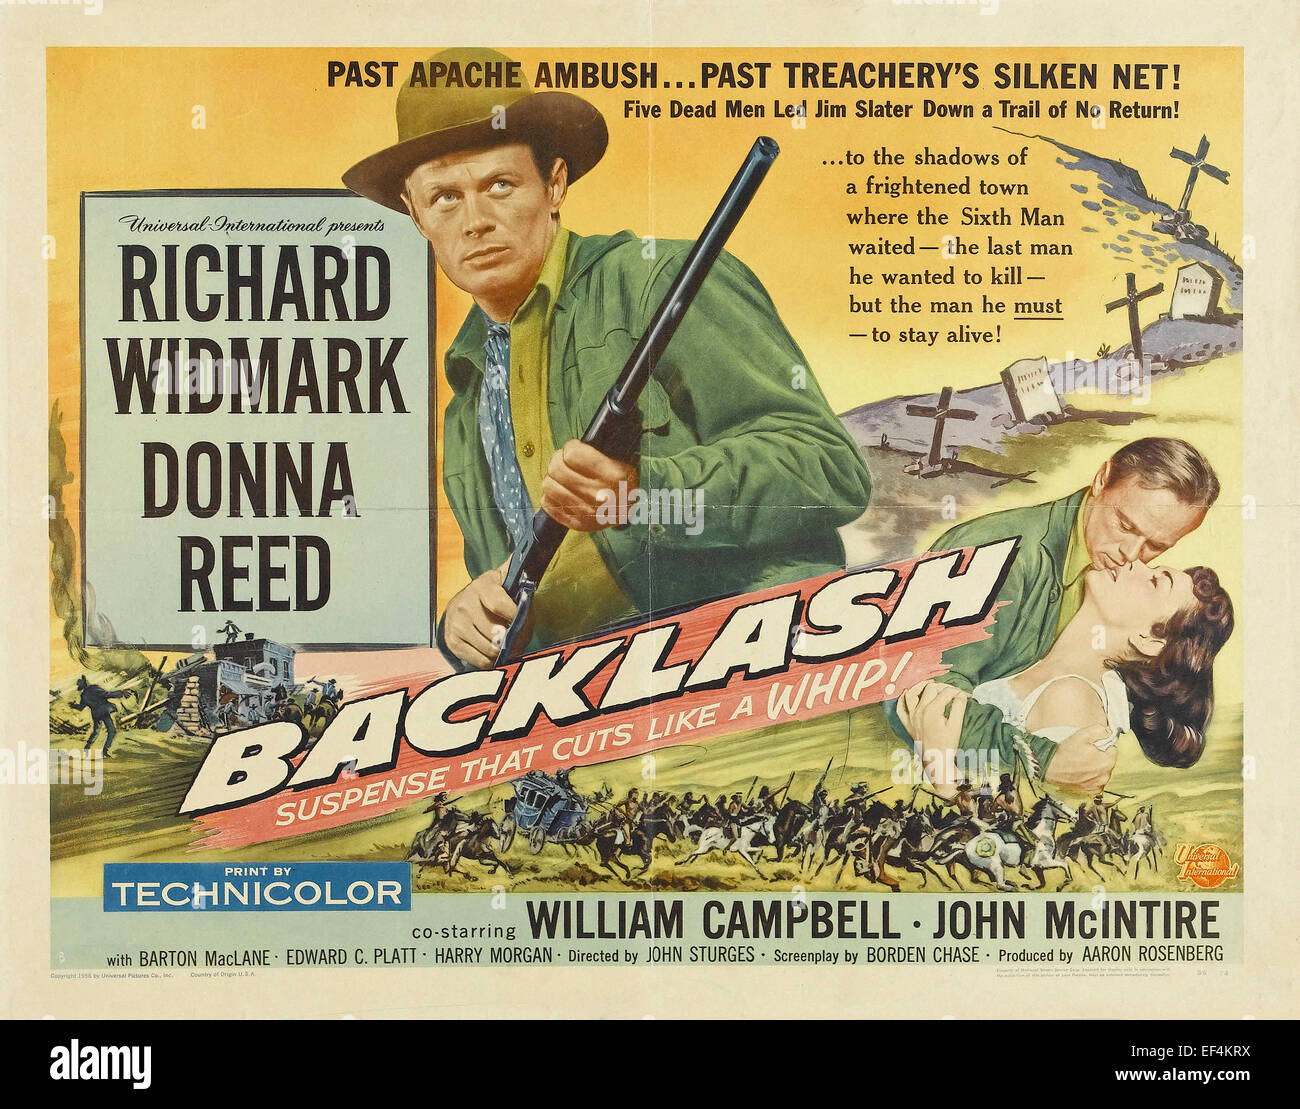 Backlash - 1956 - Movie Poster Stock Photo